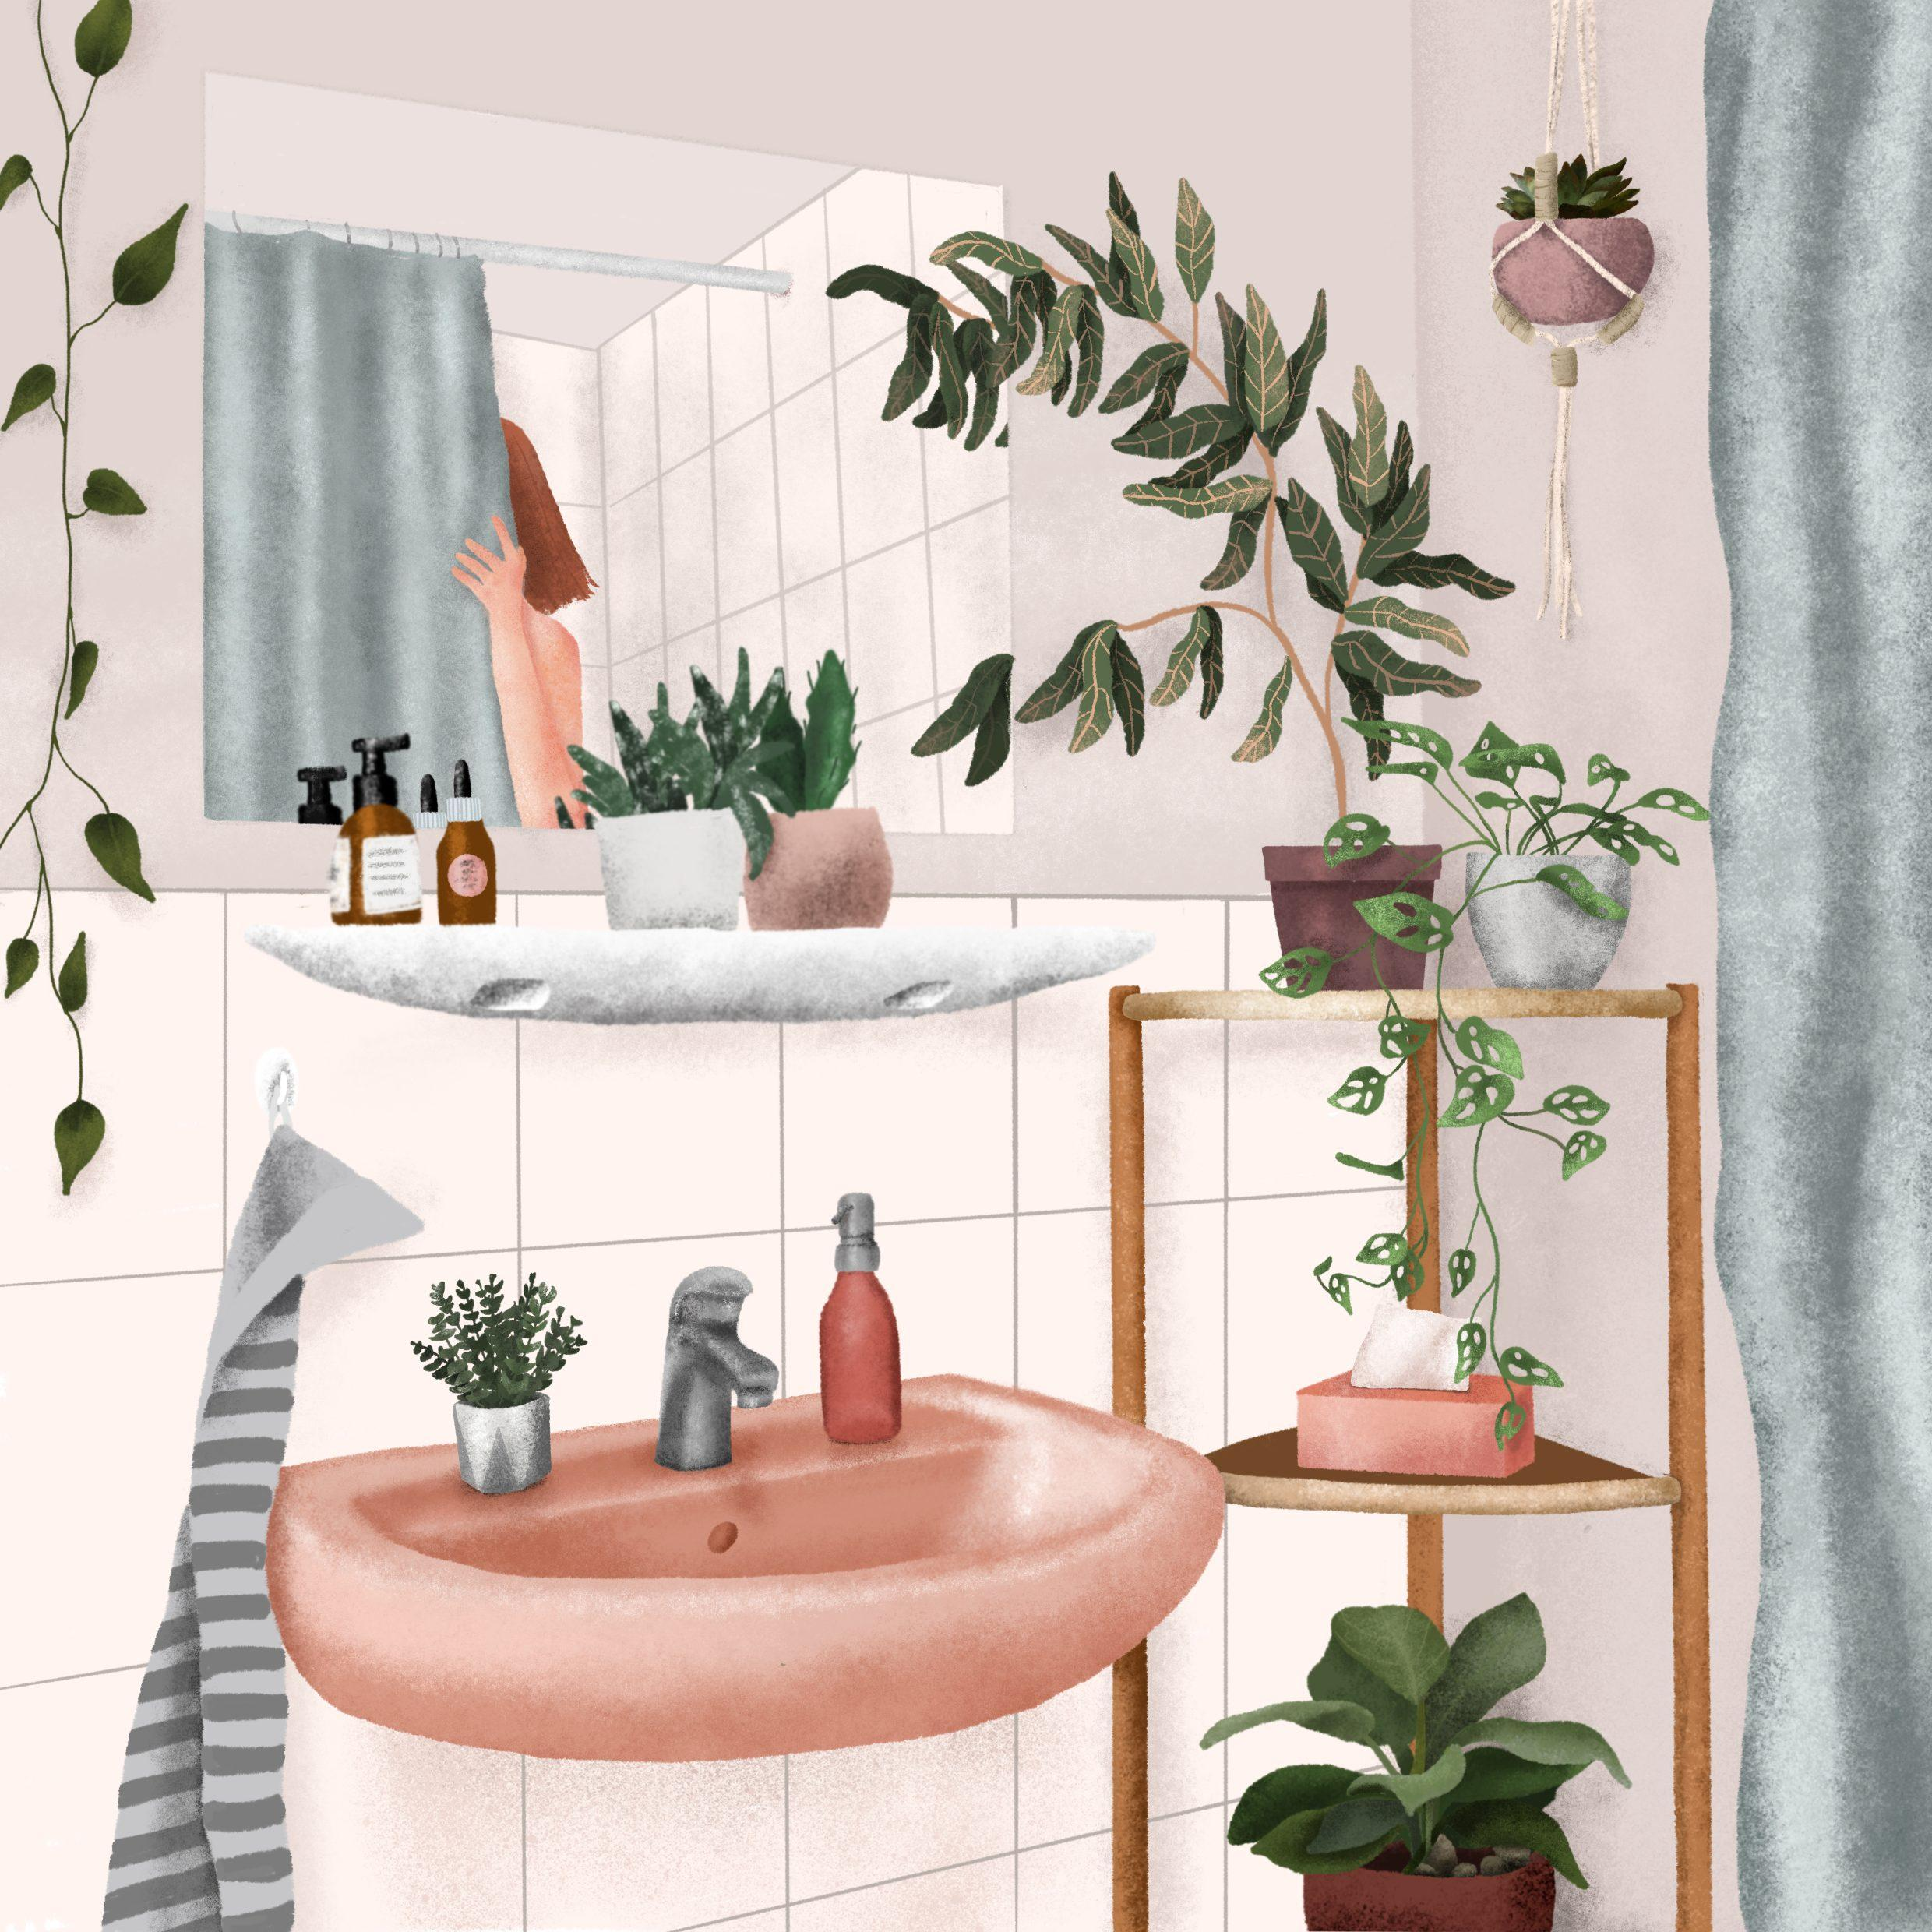 Bad Deko Beautyday Badezimmer Deko Bathroom Bad Illus